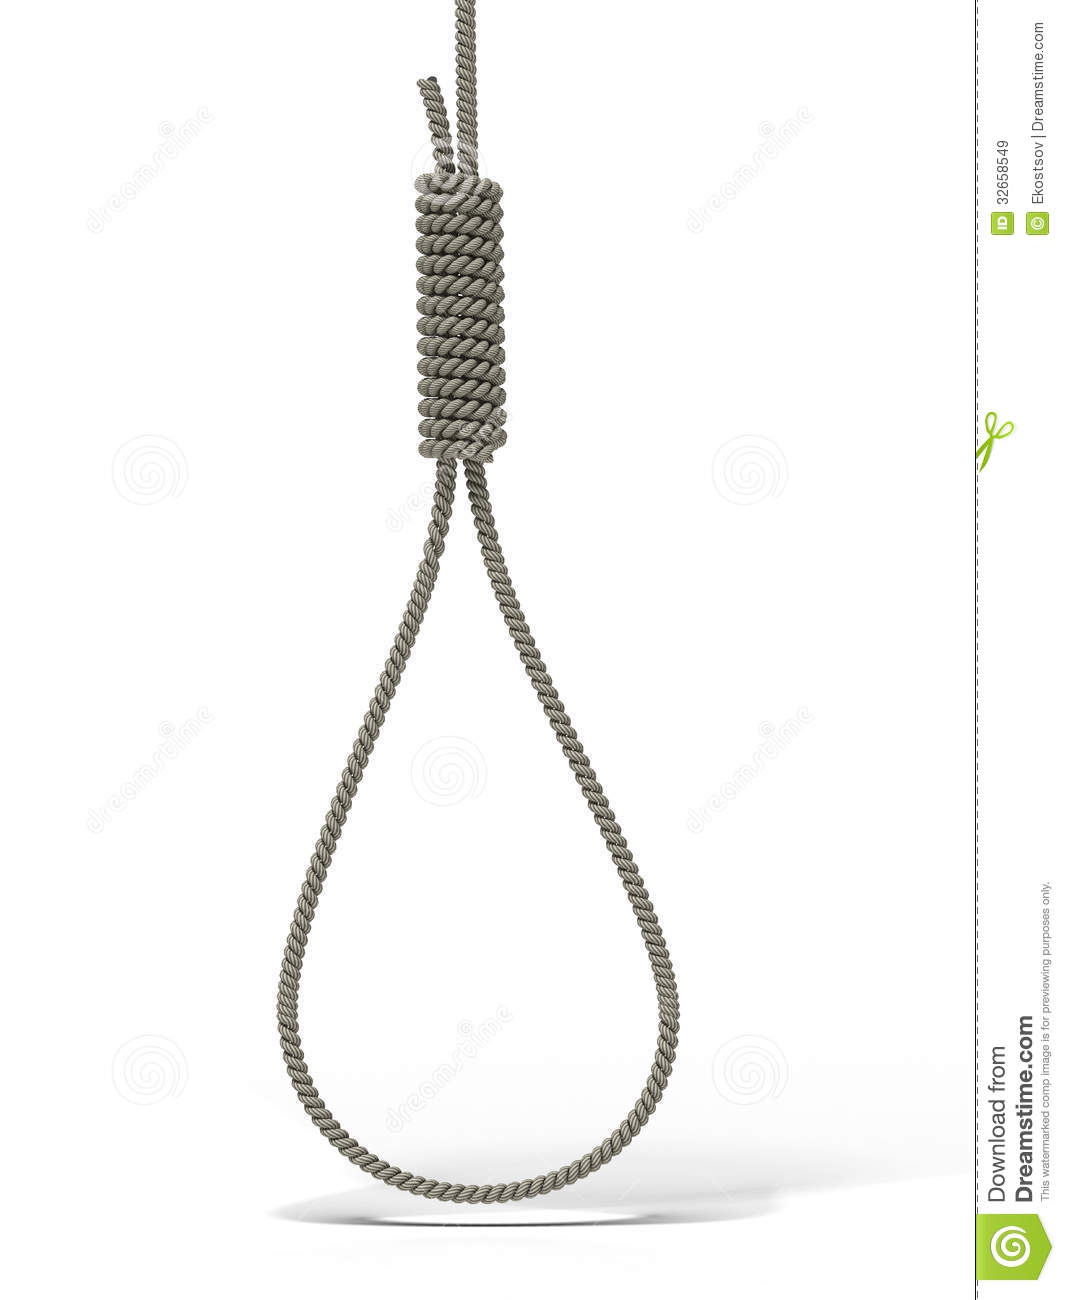 Gallows Noose Royalty Free Stock Images